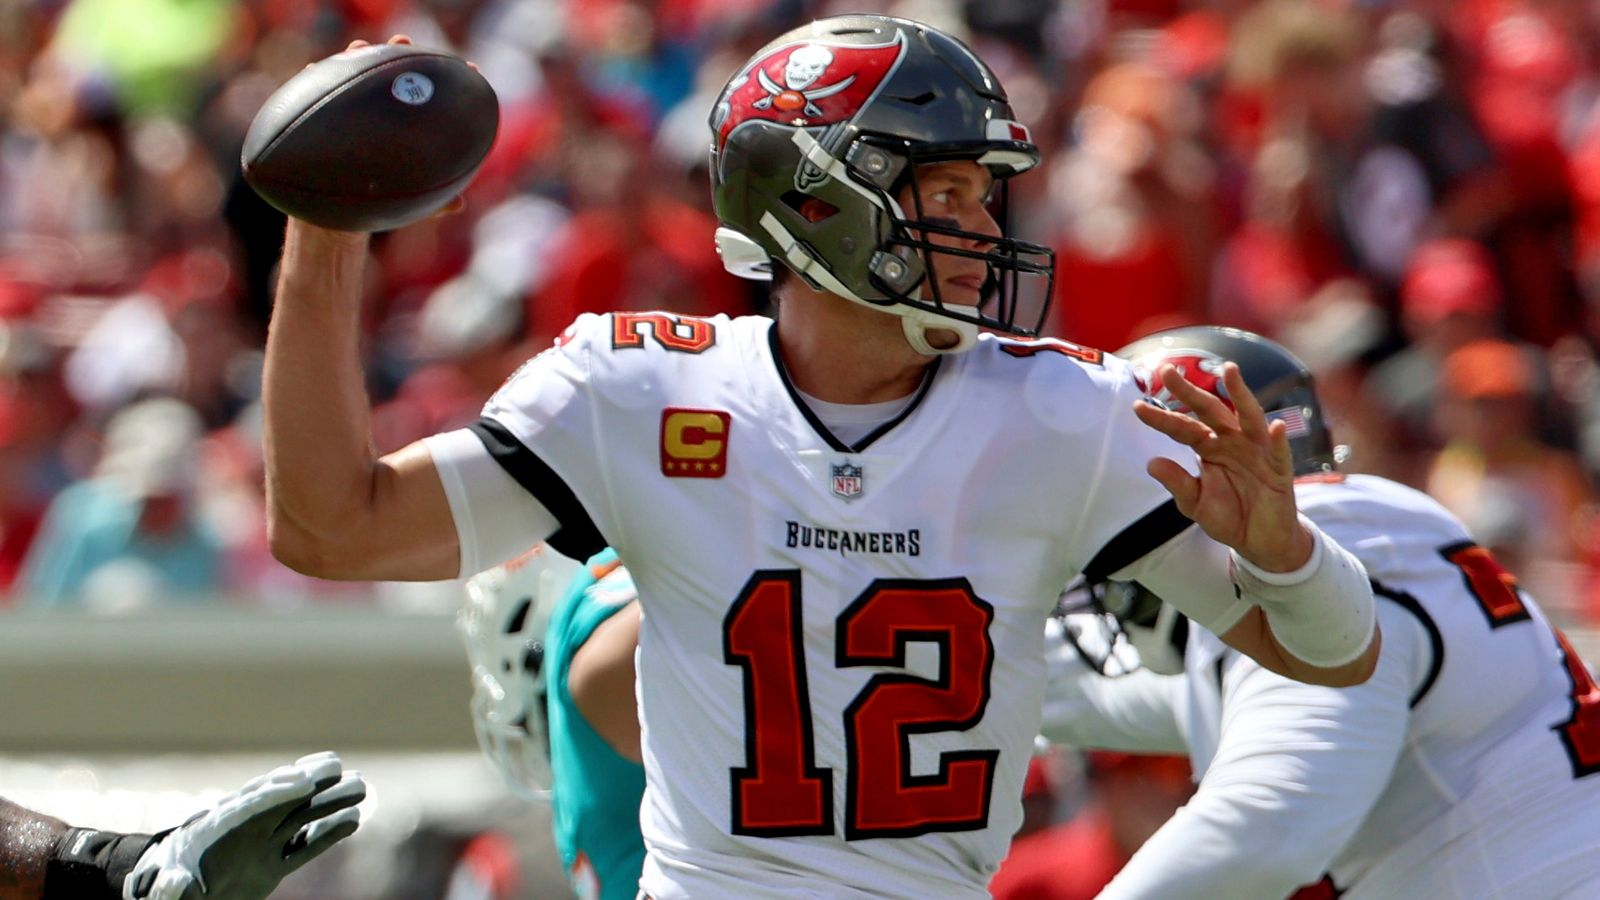 Tampa Bay Buccaneers' Tom Brady confident his injured thumb will not stop him facing Philadelphia Eagles   NFL News